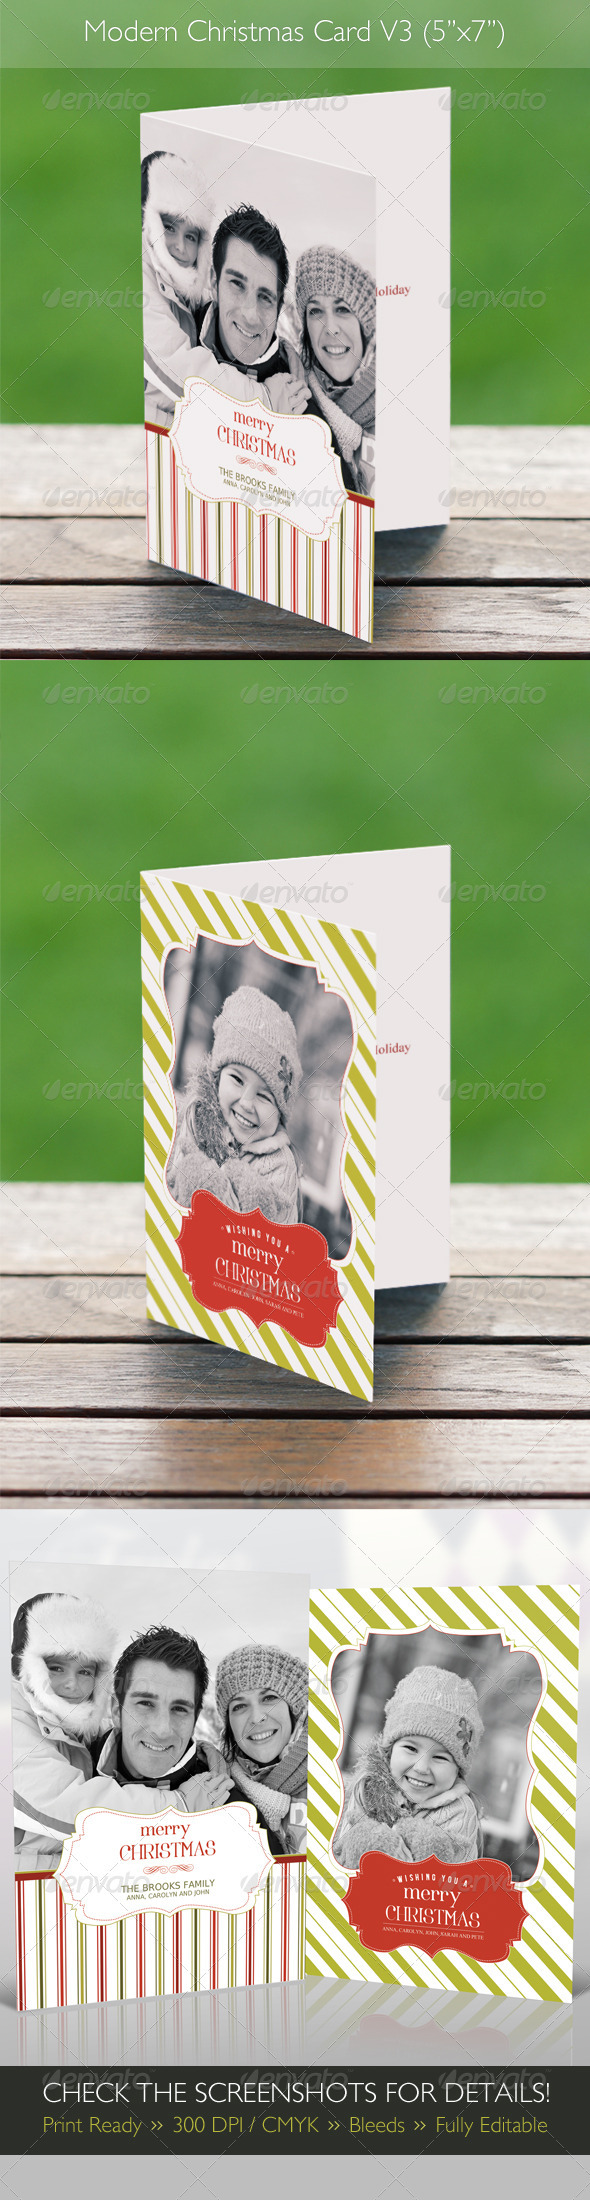 GraphicRiver Modern Christmas Card V3 2 in 1 3661126